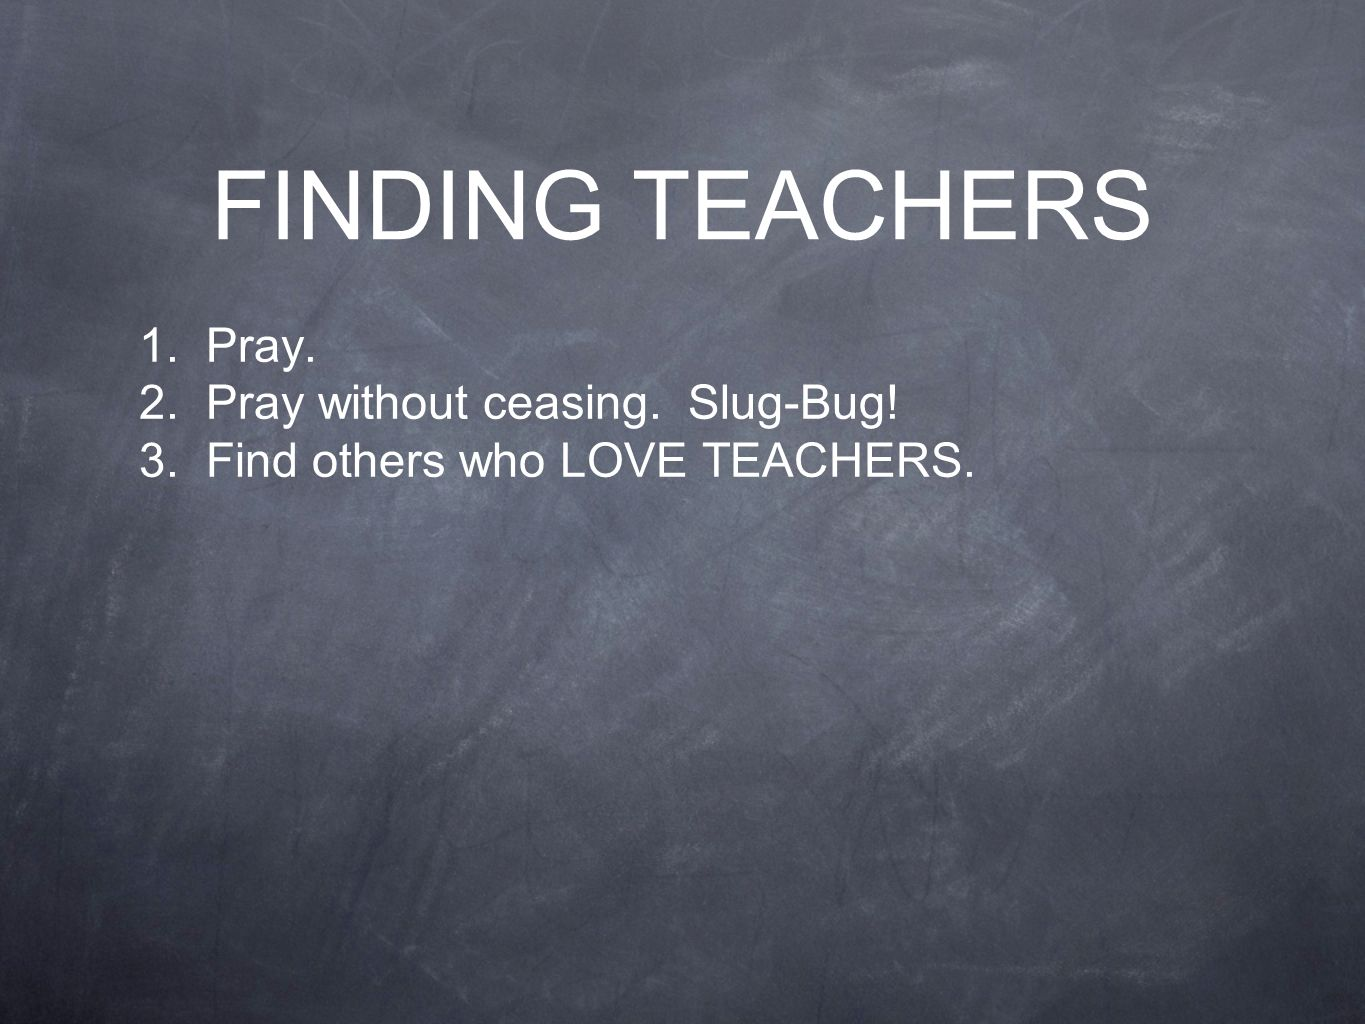 FINDING TEACHERS 1. Pray. 2. Pray without ceasing. Slug-Bug! 3. Find others who LOVE TEACHERS.